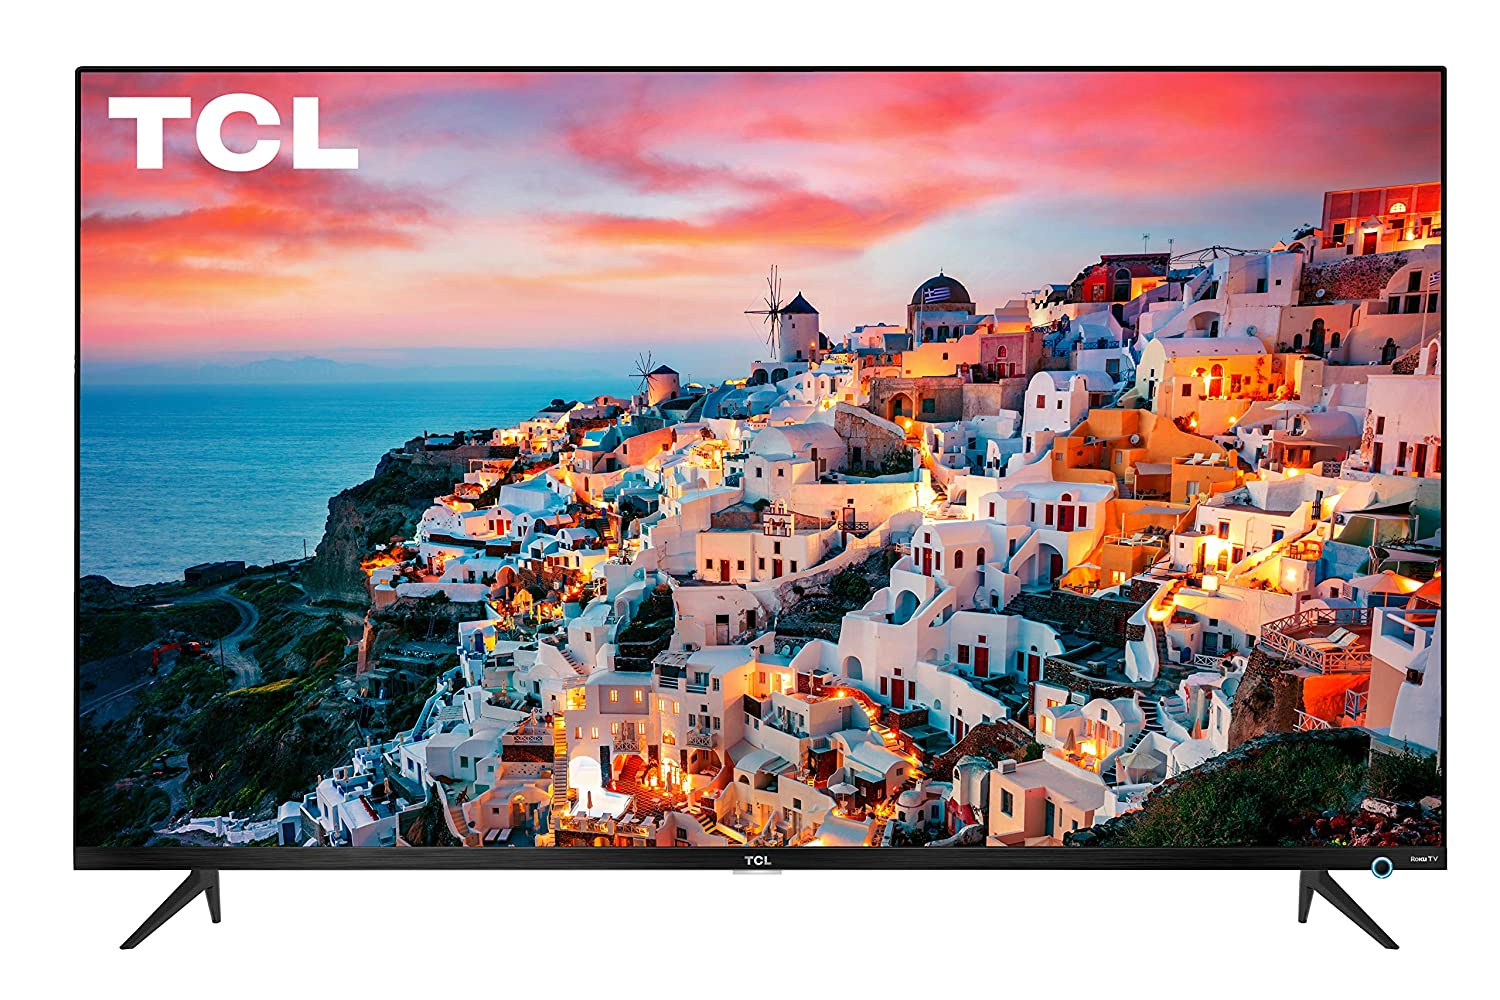 tcl 5-series roku smart 4k tv